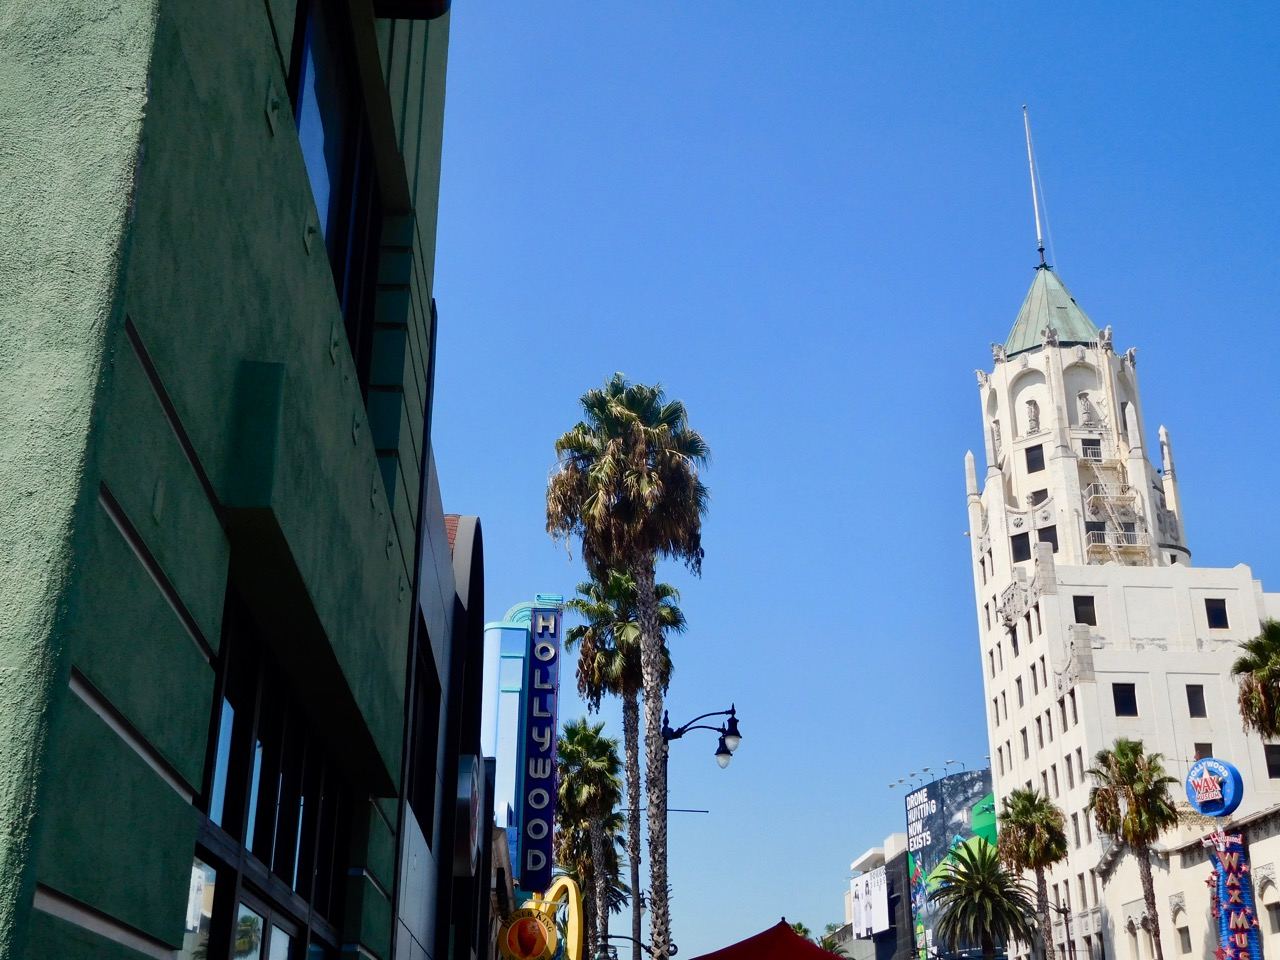 3 Days in Hollywood - Hollywood Boulevard (3)